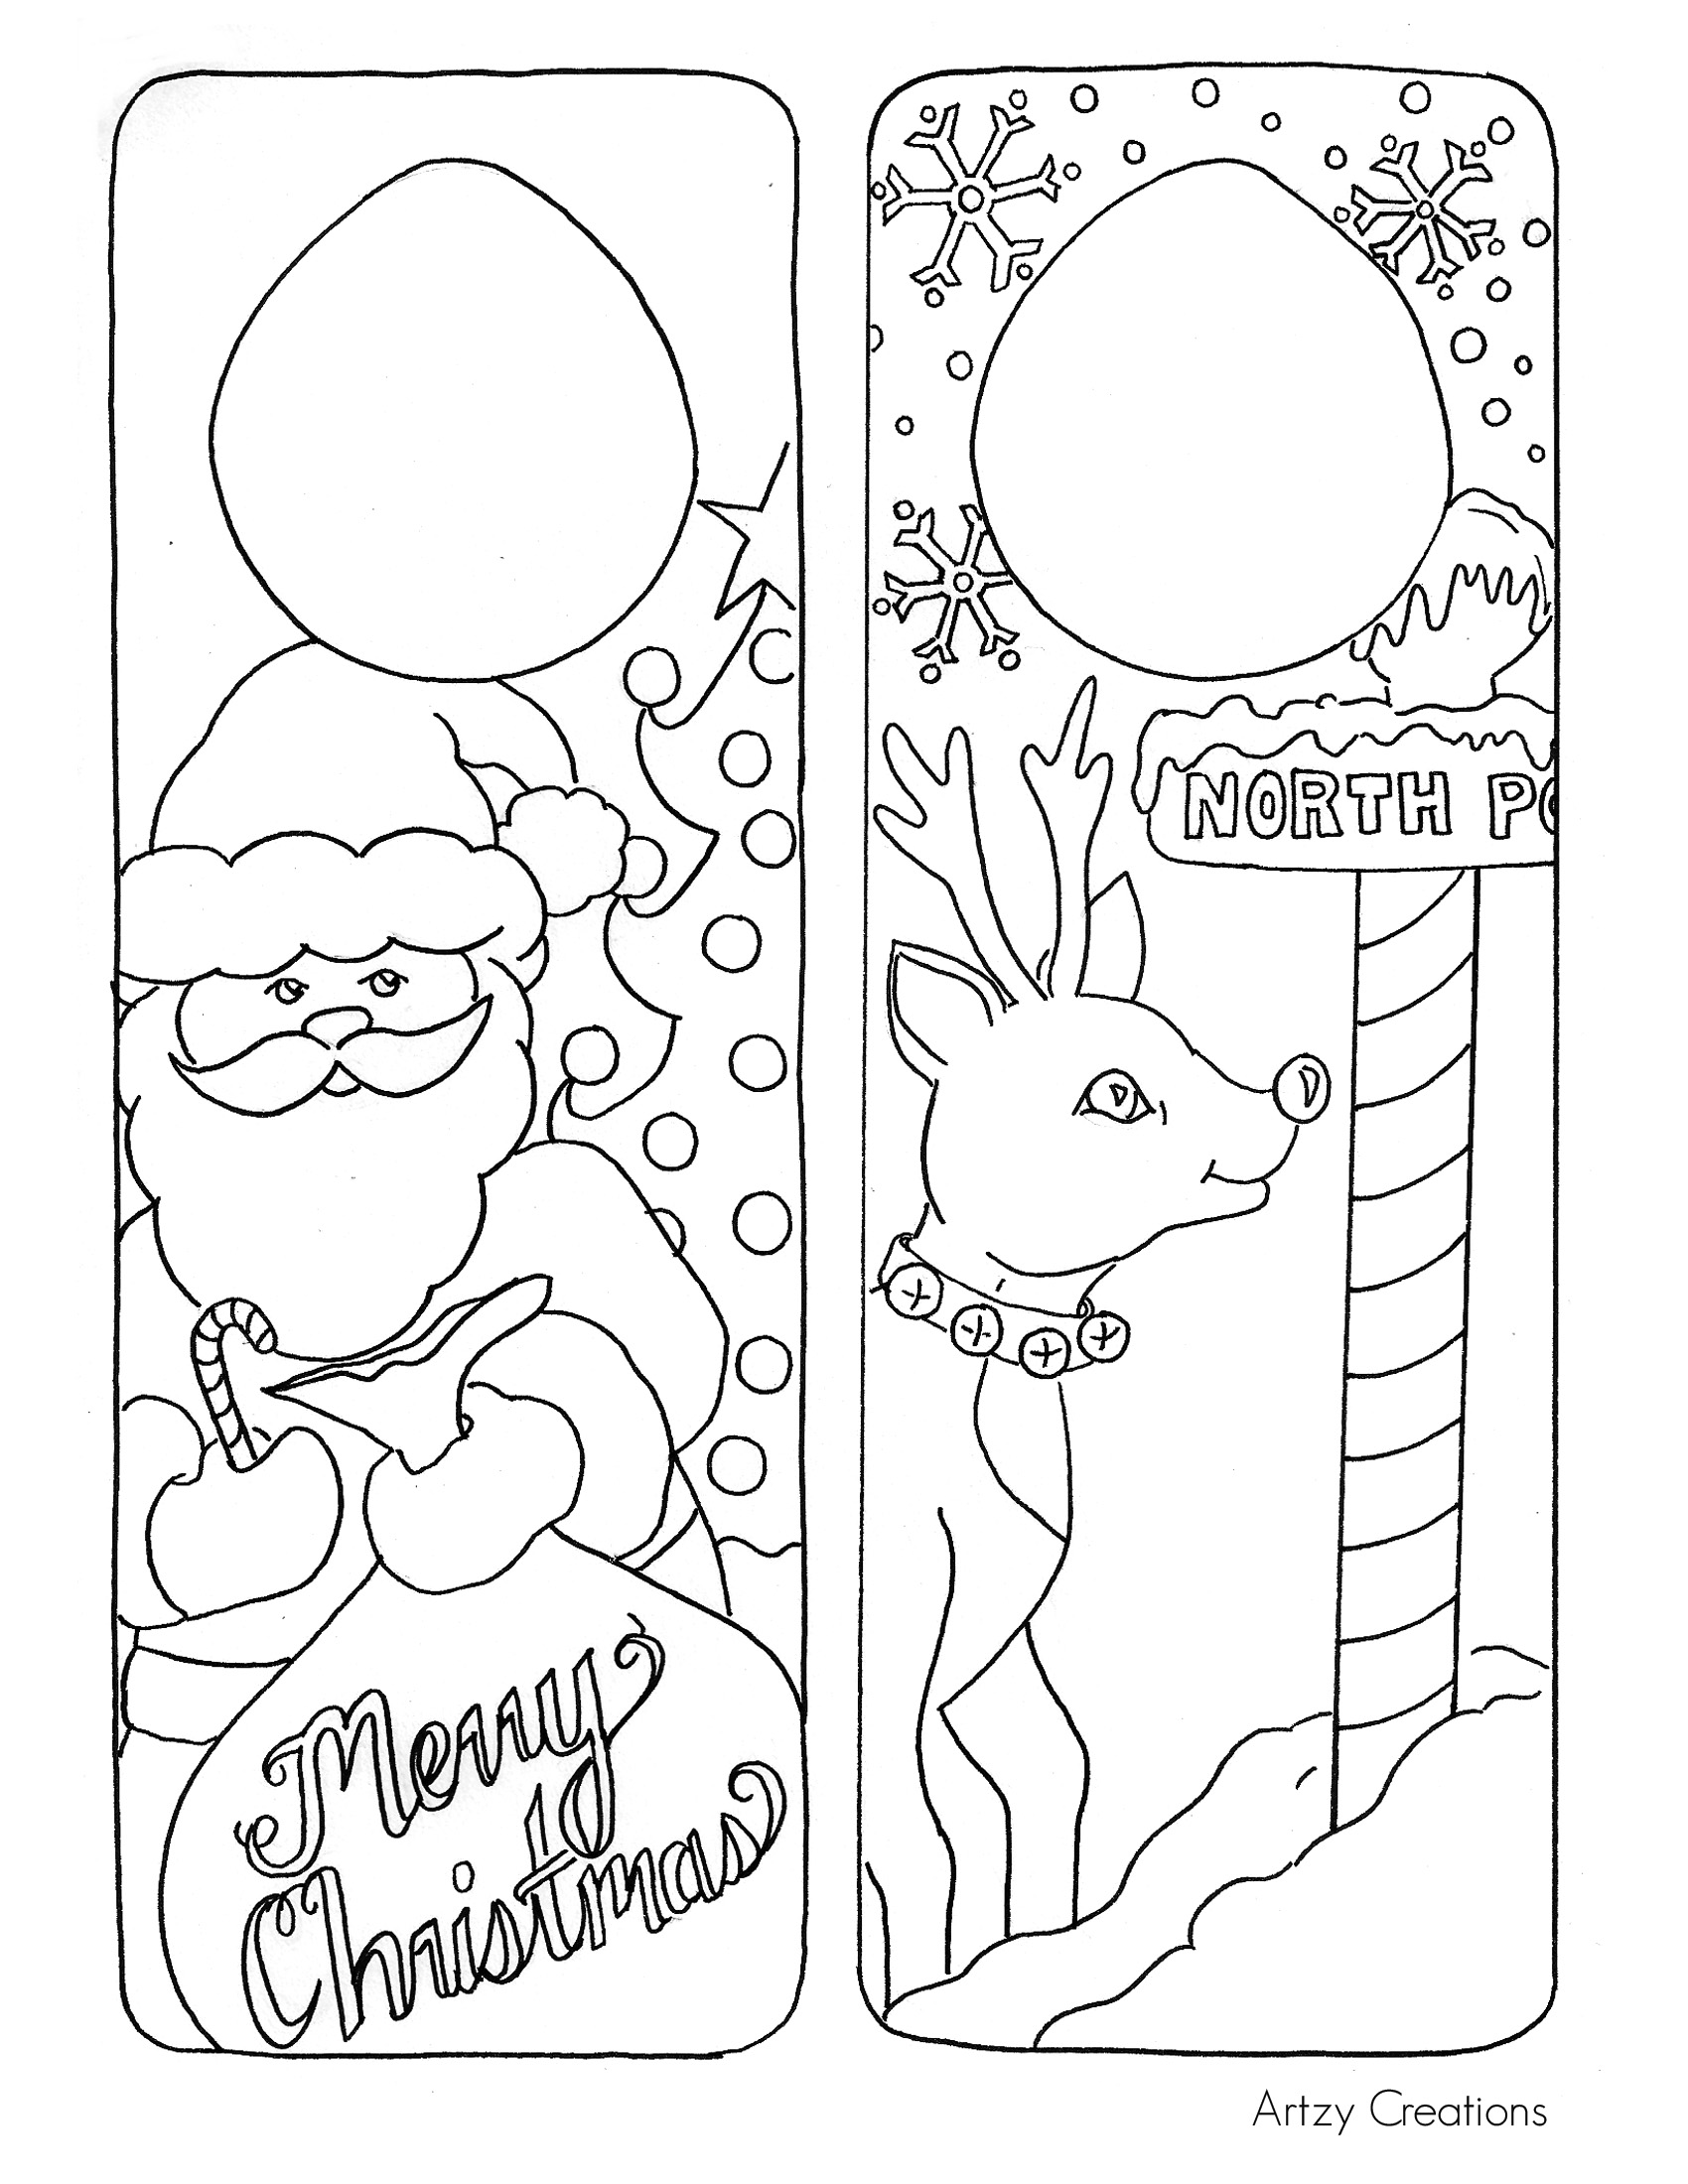 Christmas Coloring Pages Addition With Page Door Hanger Printables The 36th AVENUE